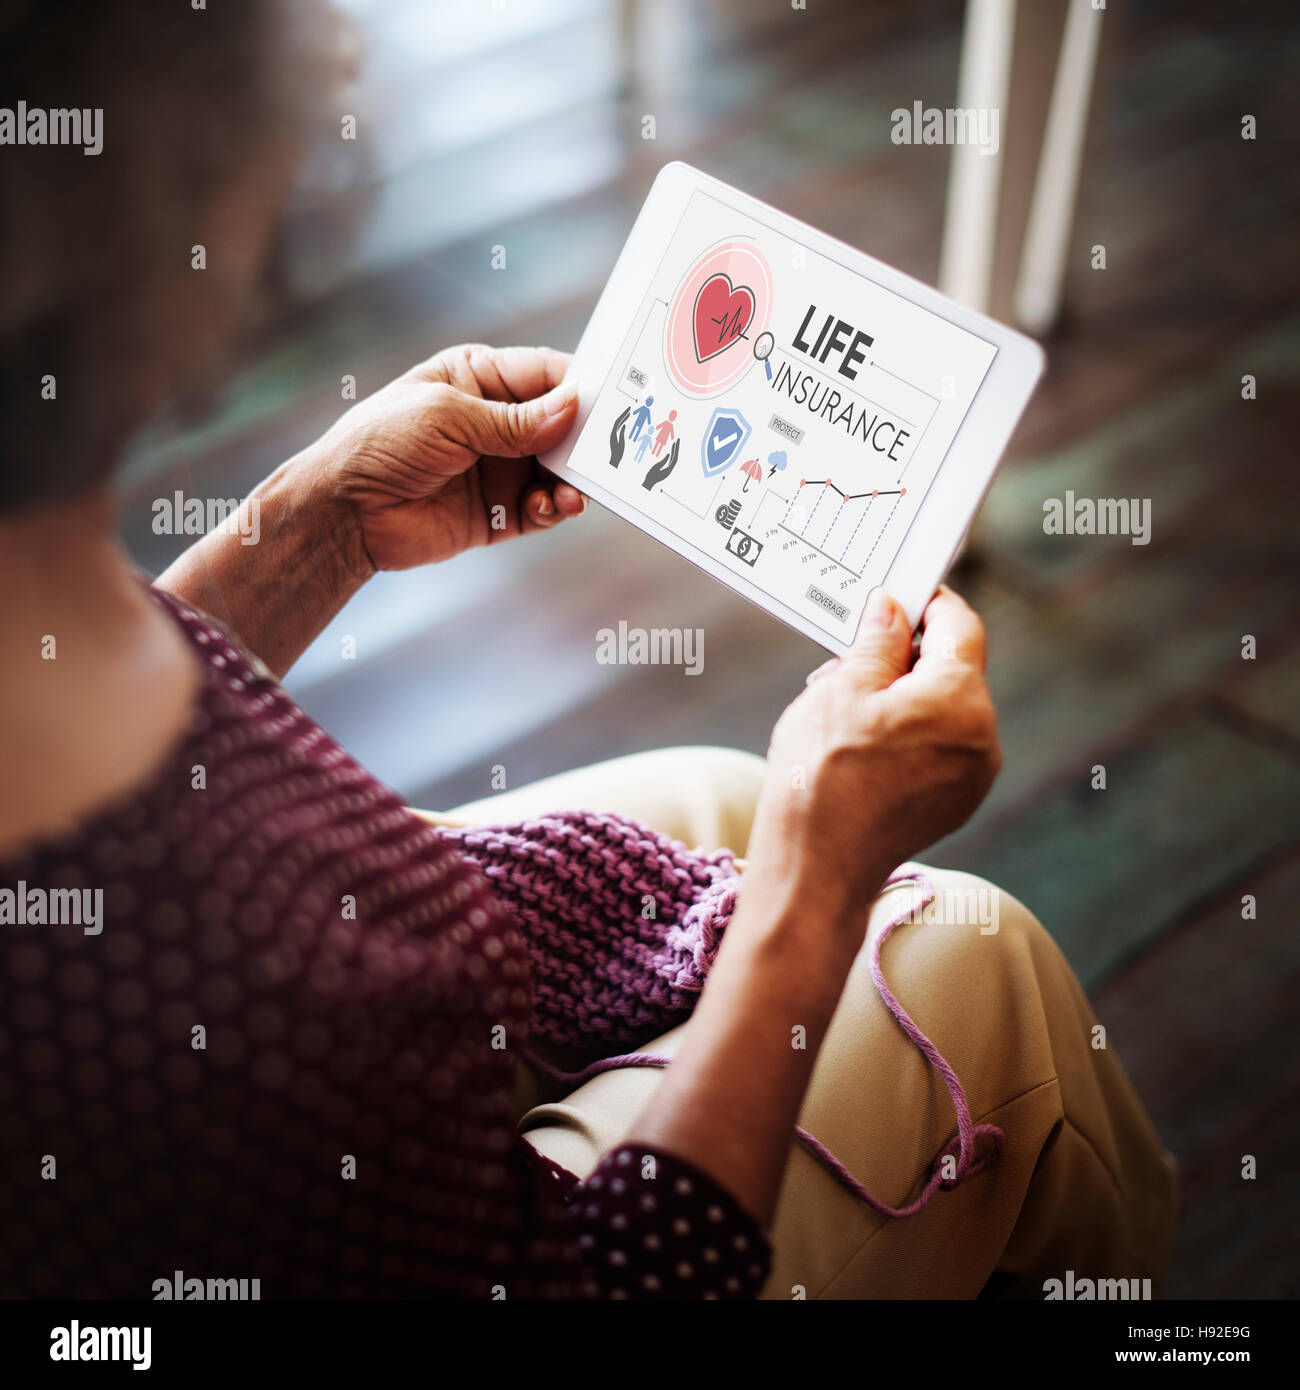 Life Insurance Protection Beneficiary Safeguard Concept - Stock Image